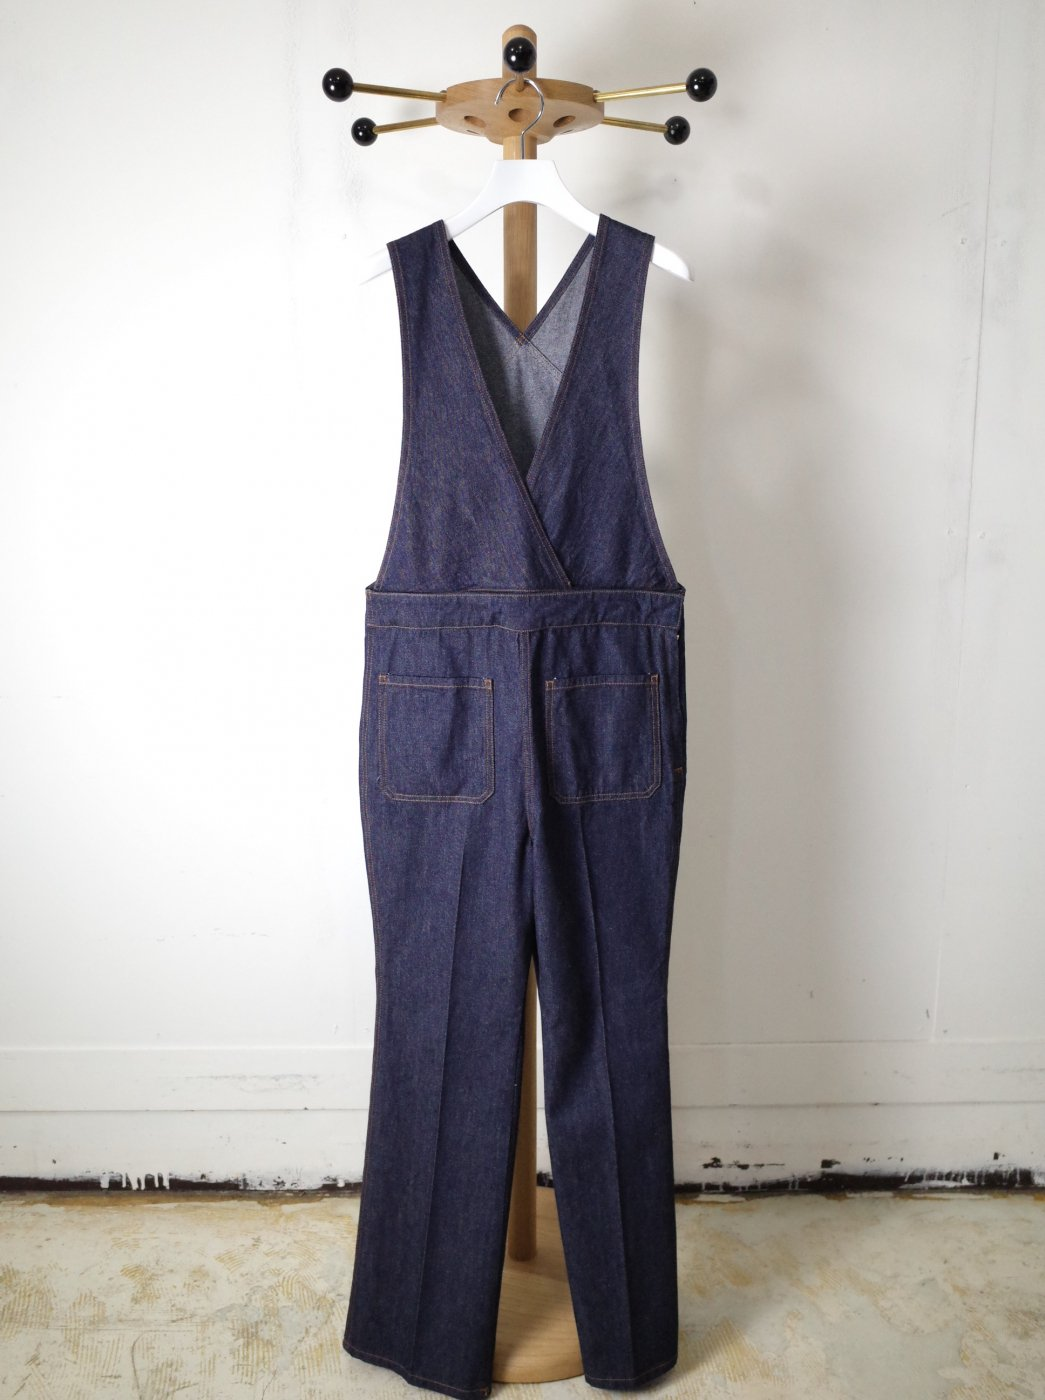 <img class='new_mark_img1' src='https://img.shop-pro.jp/img/new/icons8.gif' style='border:none;display:inline;margin:0px;padding:0px;width:auto;' />CURRENTAGE-DENIM OVERALL-INDIGO BLUE-